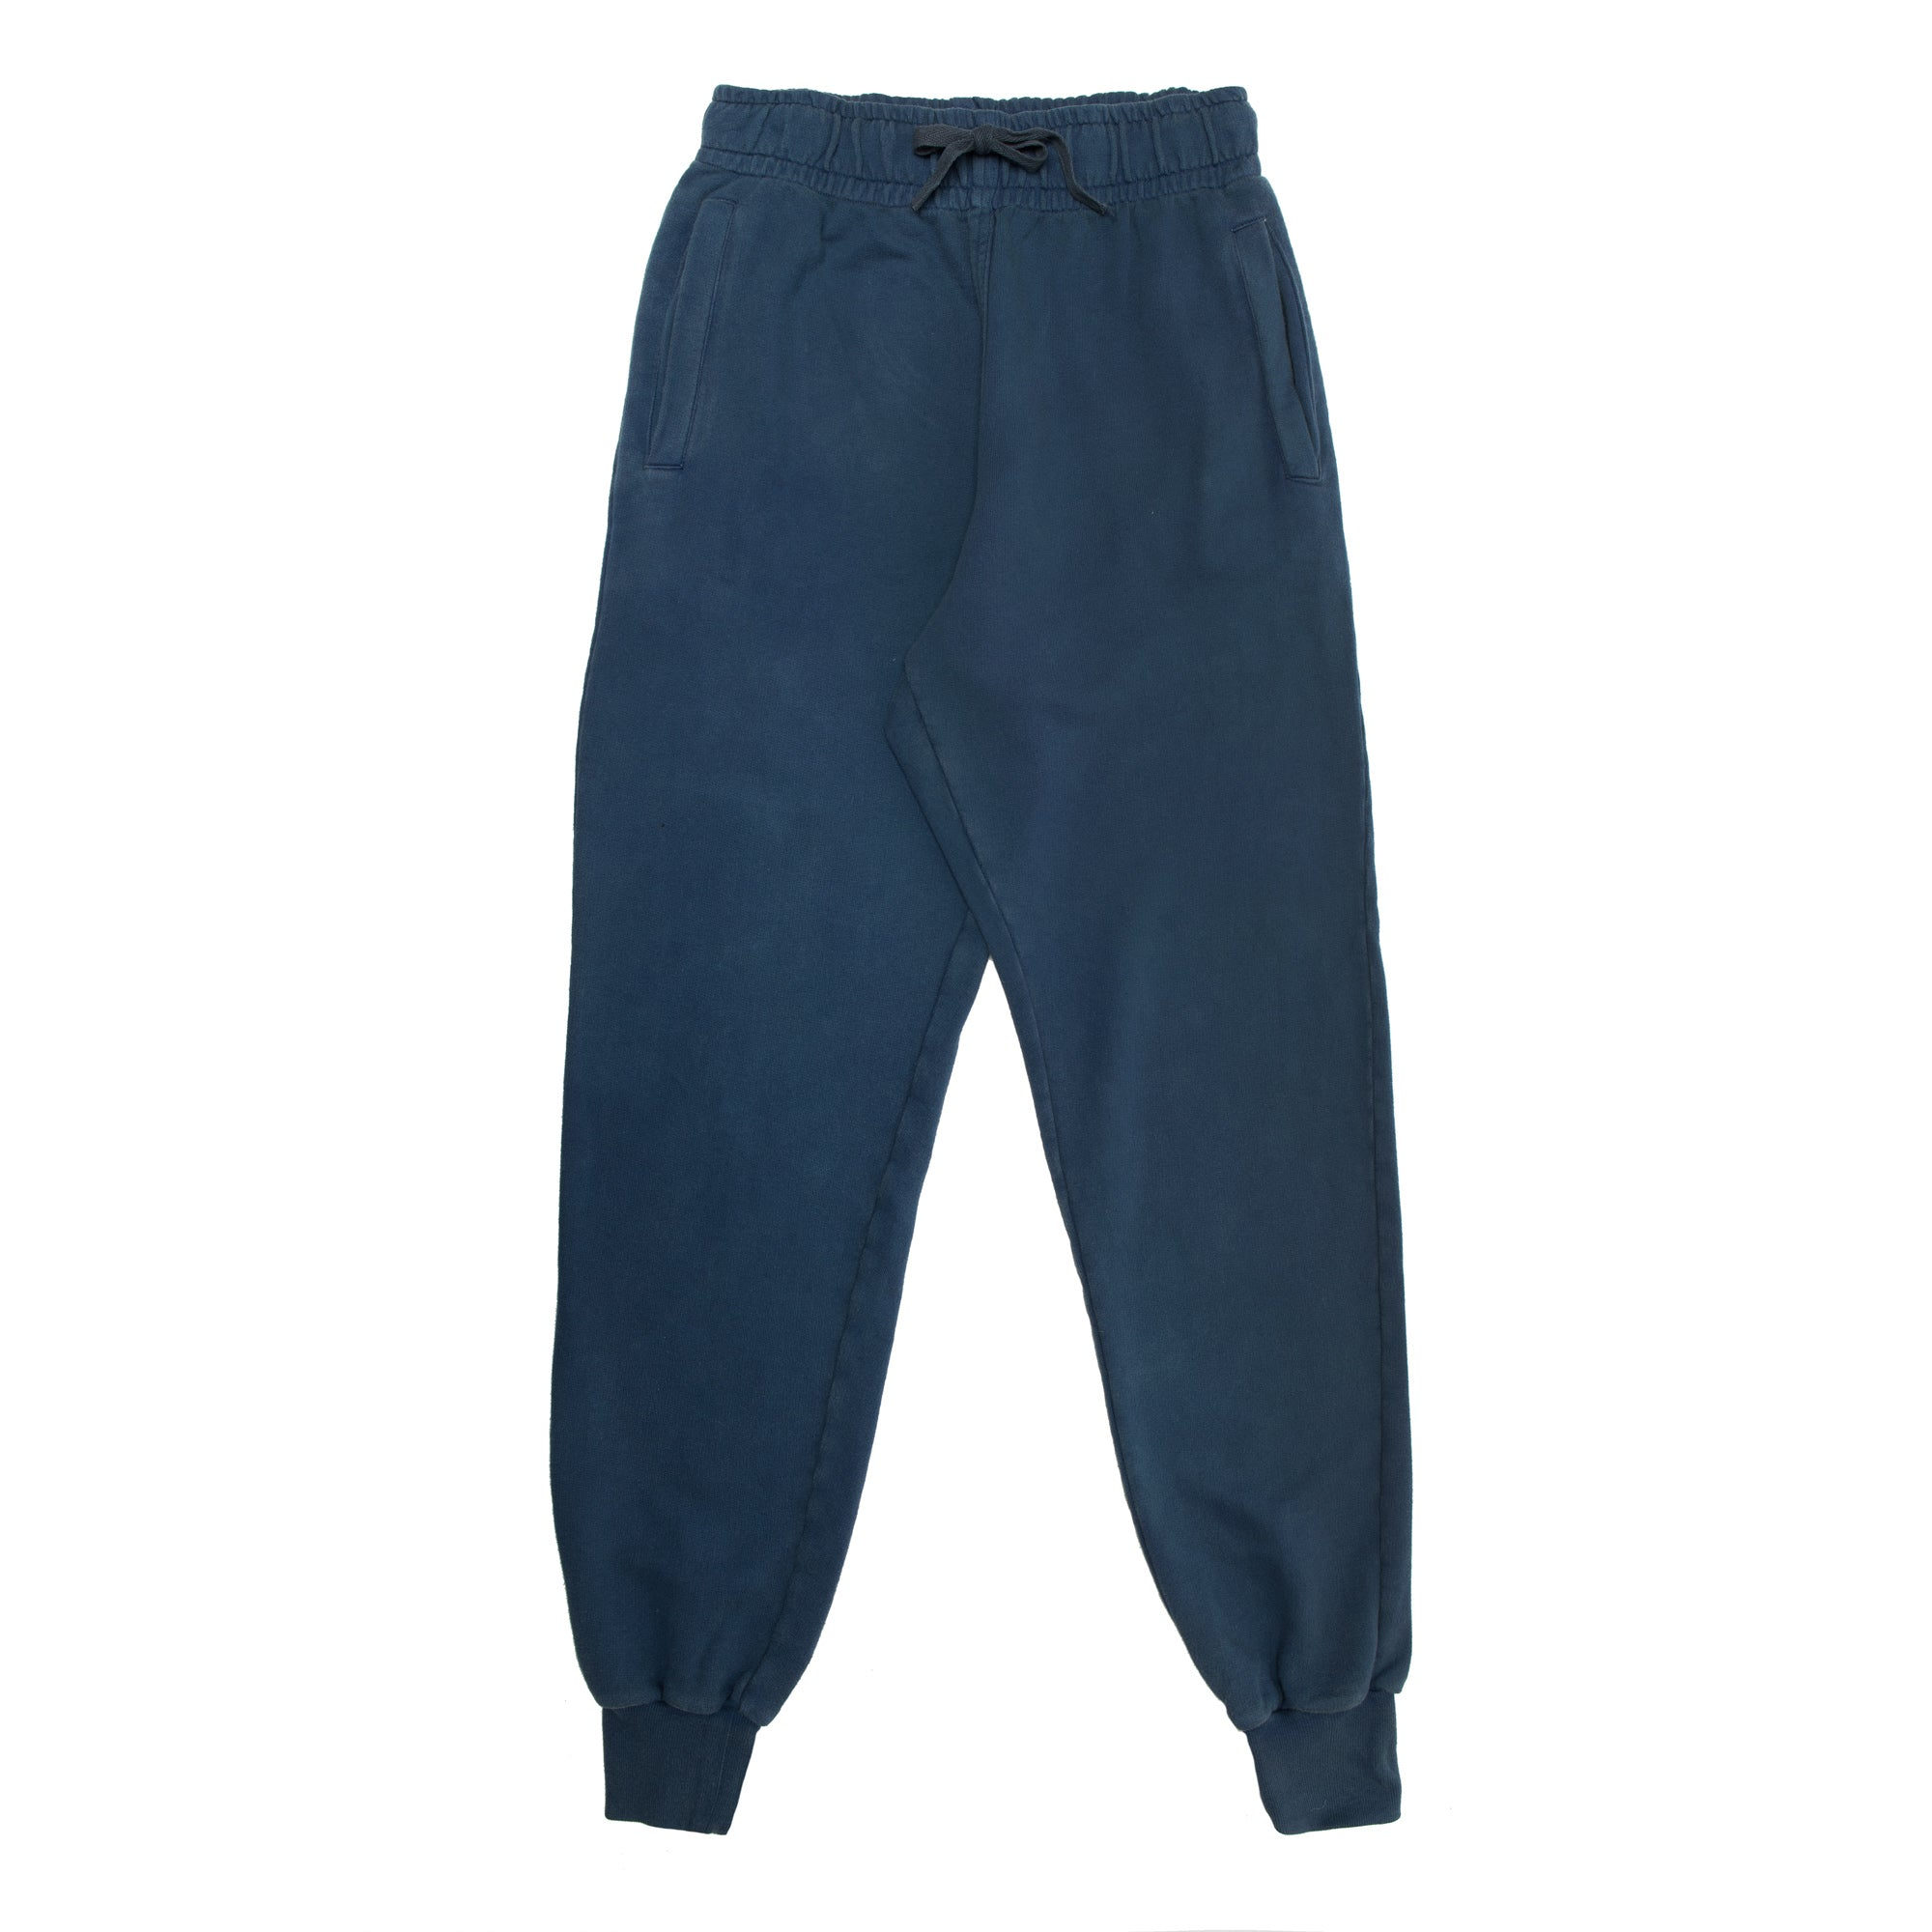 The Blue Sweatpant